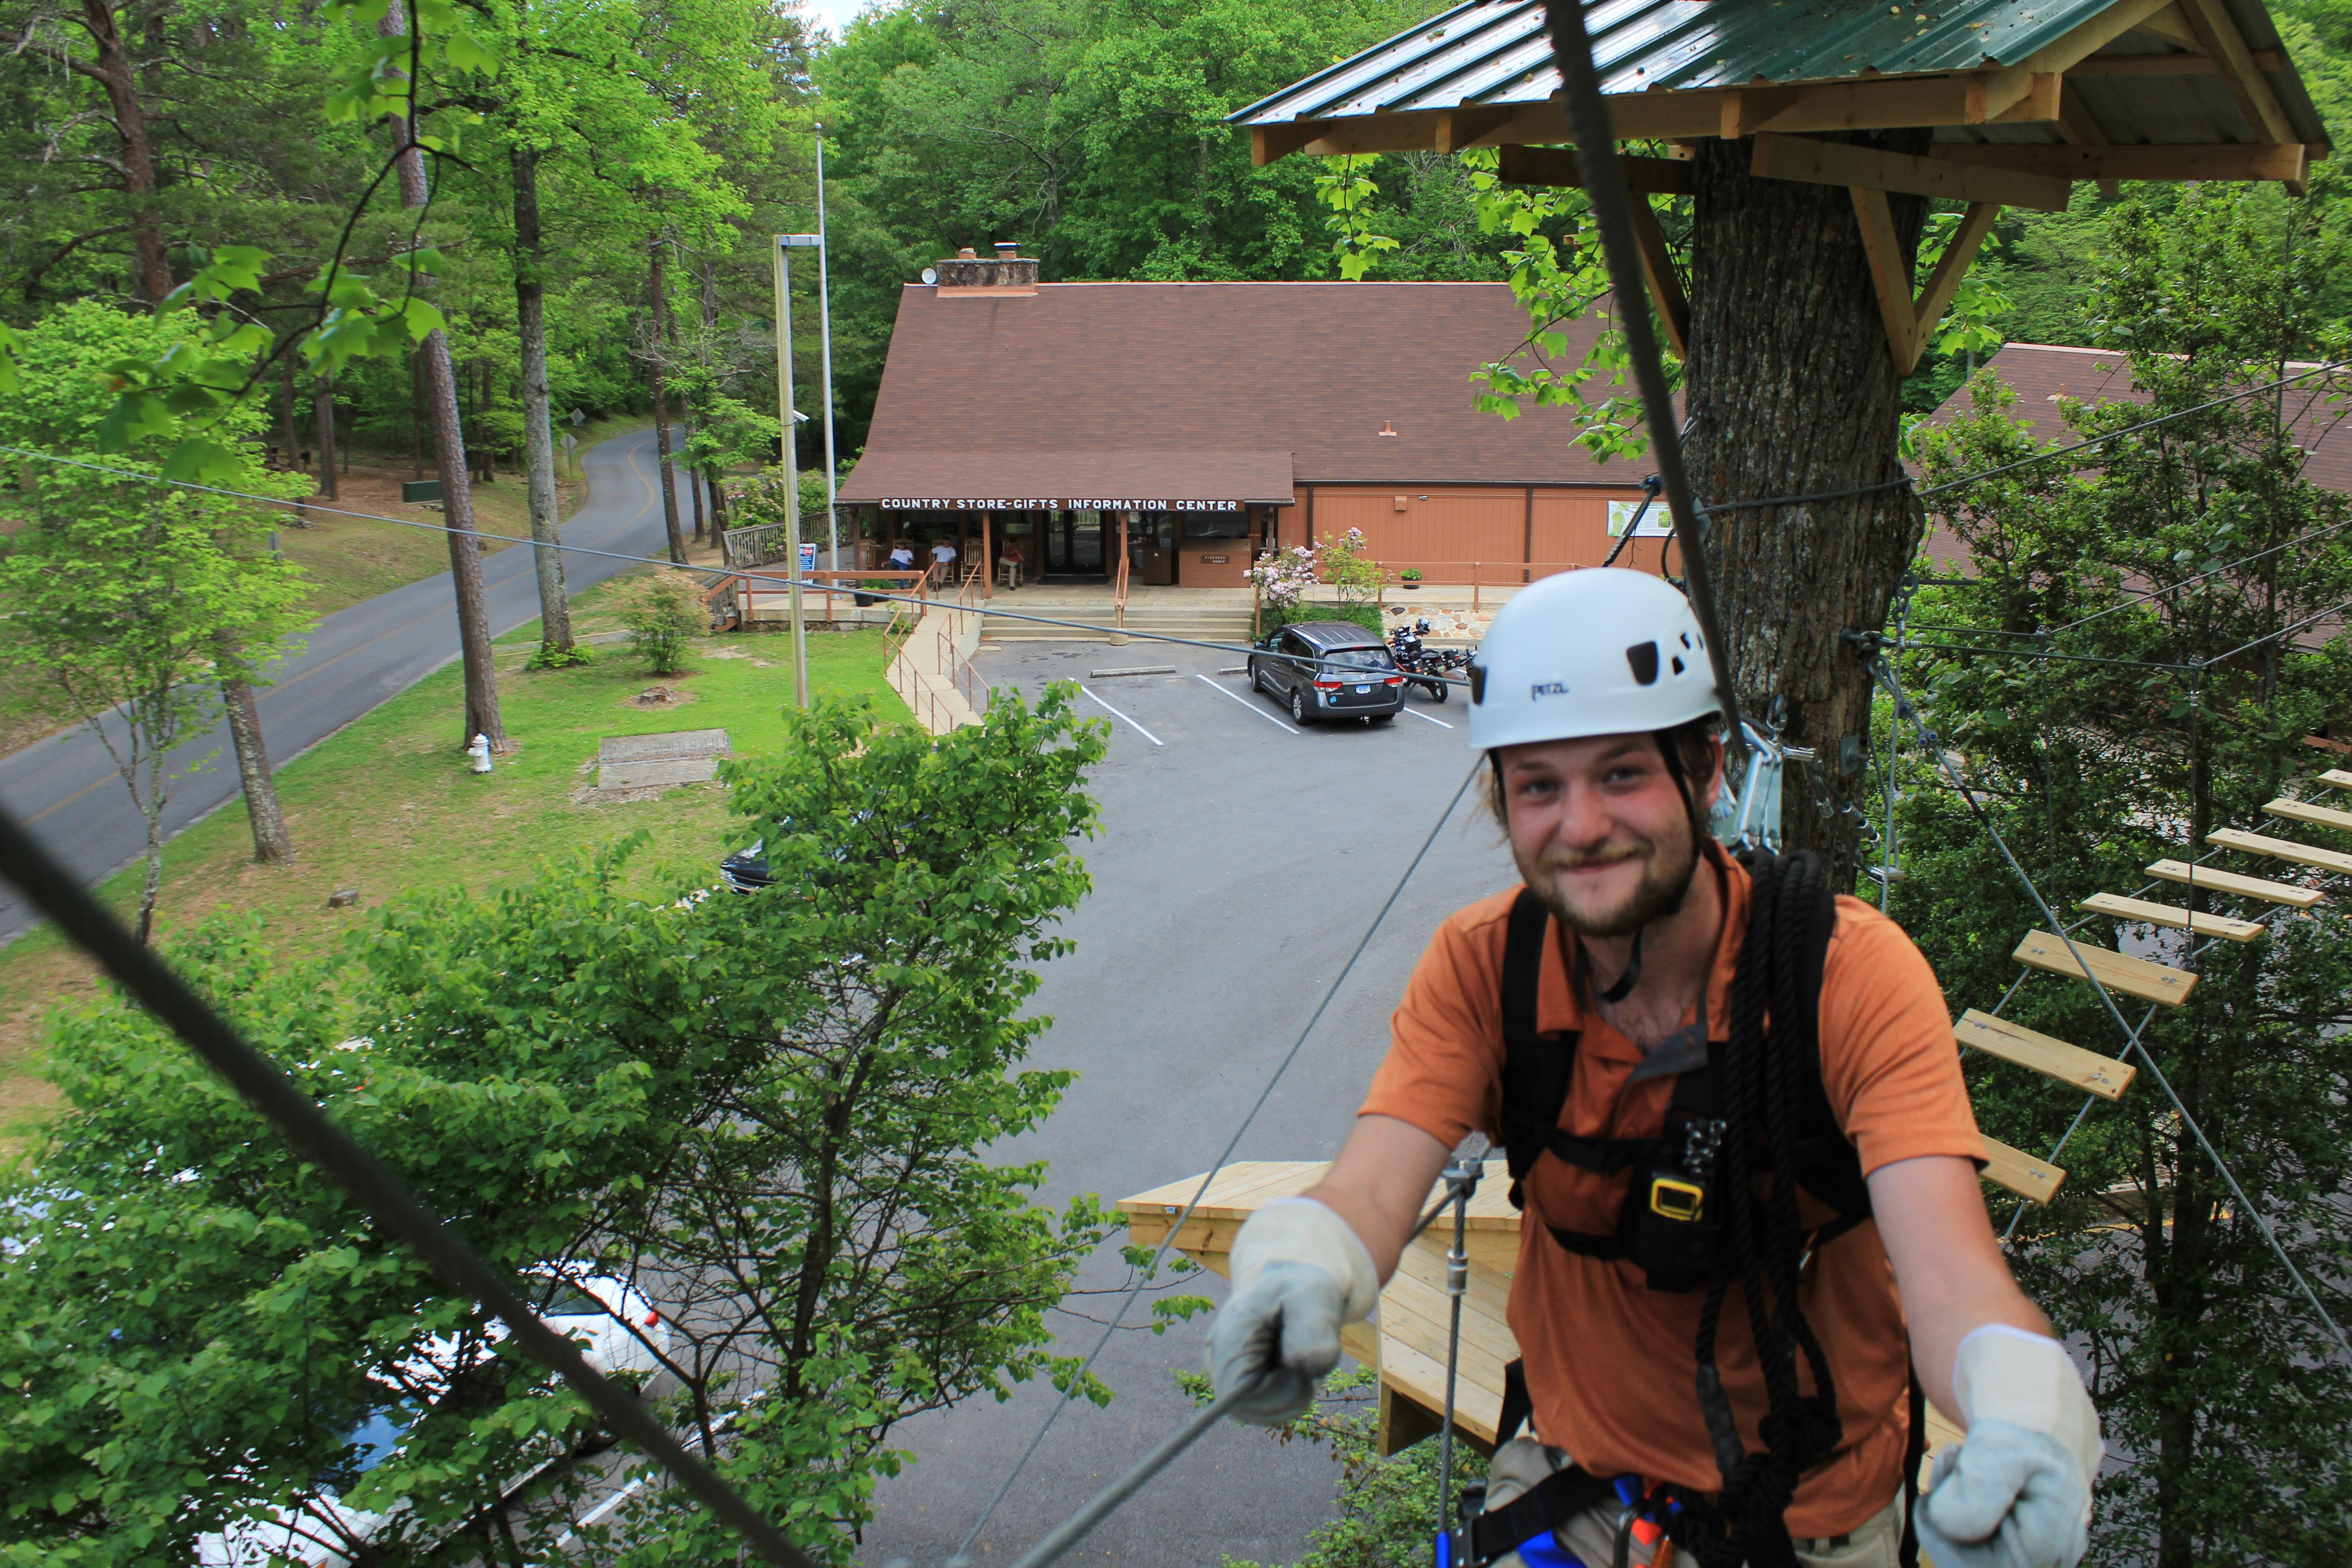 Zip Line Staff Country Store